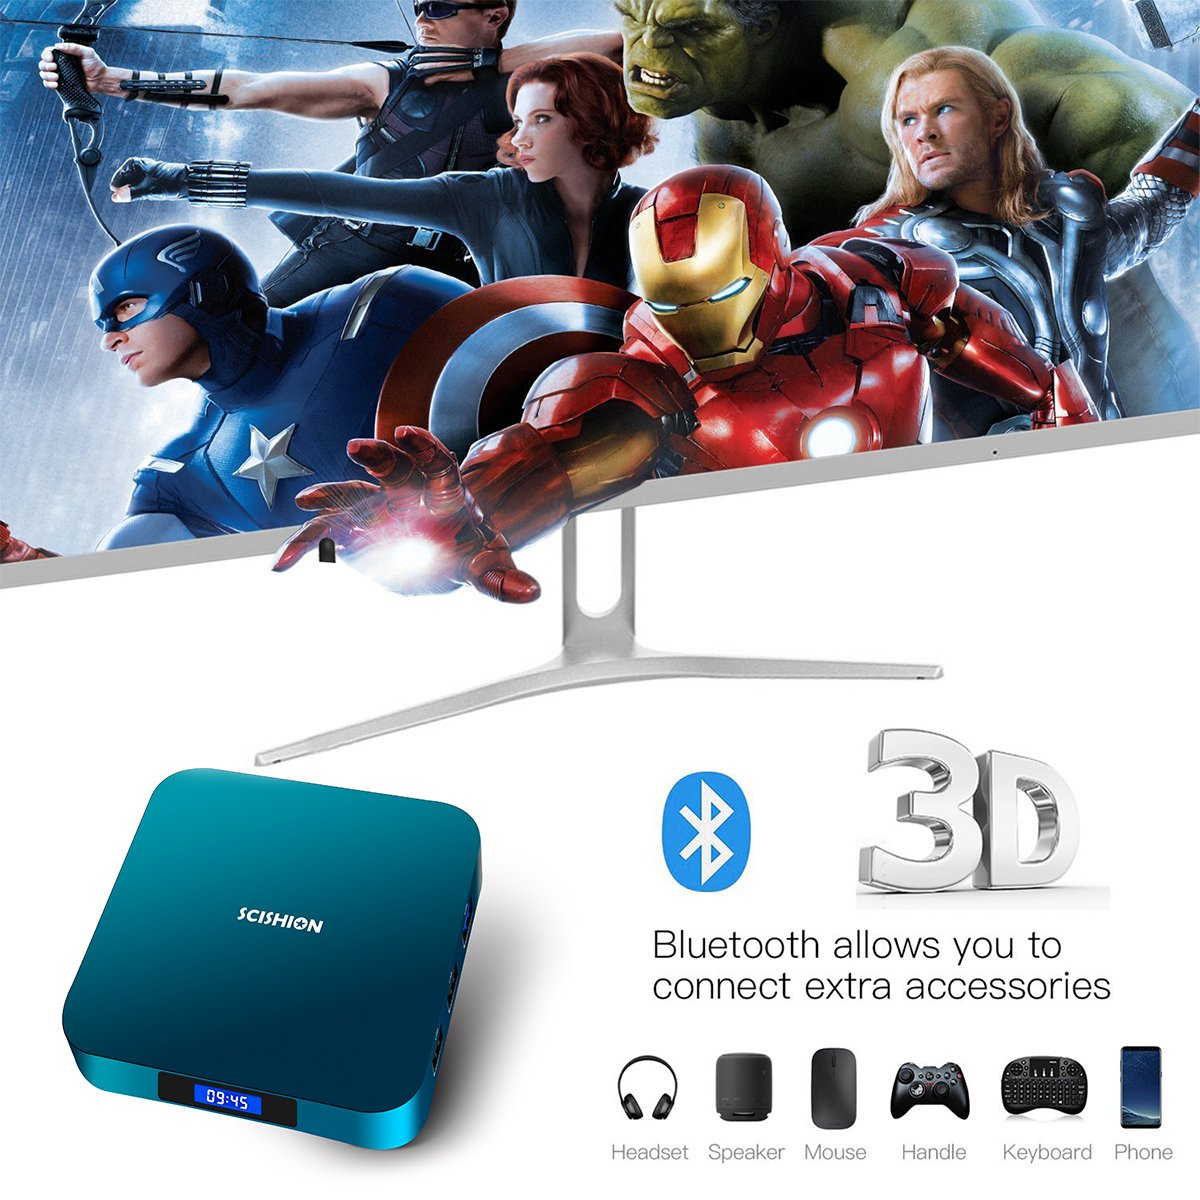 Android 8.1 TV Box with Voice Remote, RK3328 Quad Core 64bit 2GB DDR3 16GB eMMC Memory Smart TV Box with Bluetooth 4.0 WiFi Ethernet HDMI HD 4K Media Player Set Top Box by YAGALA (Image #6)